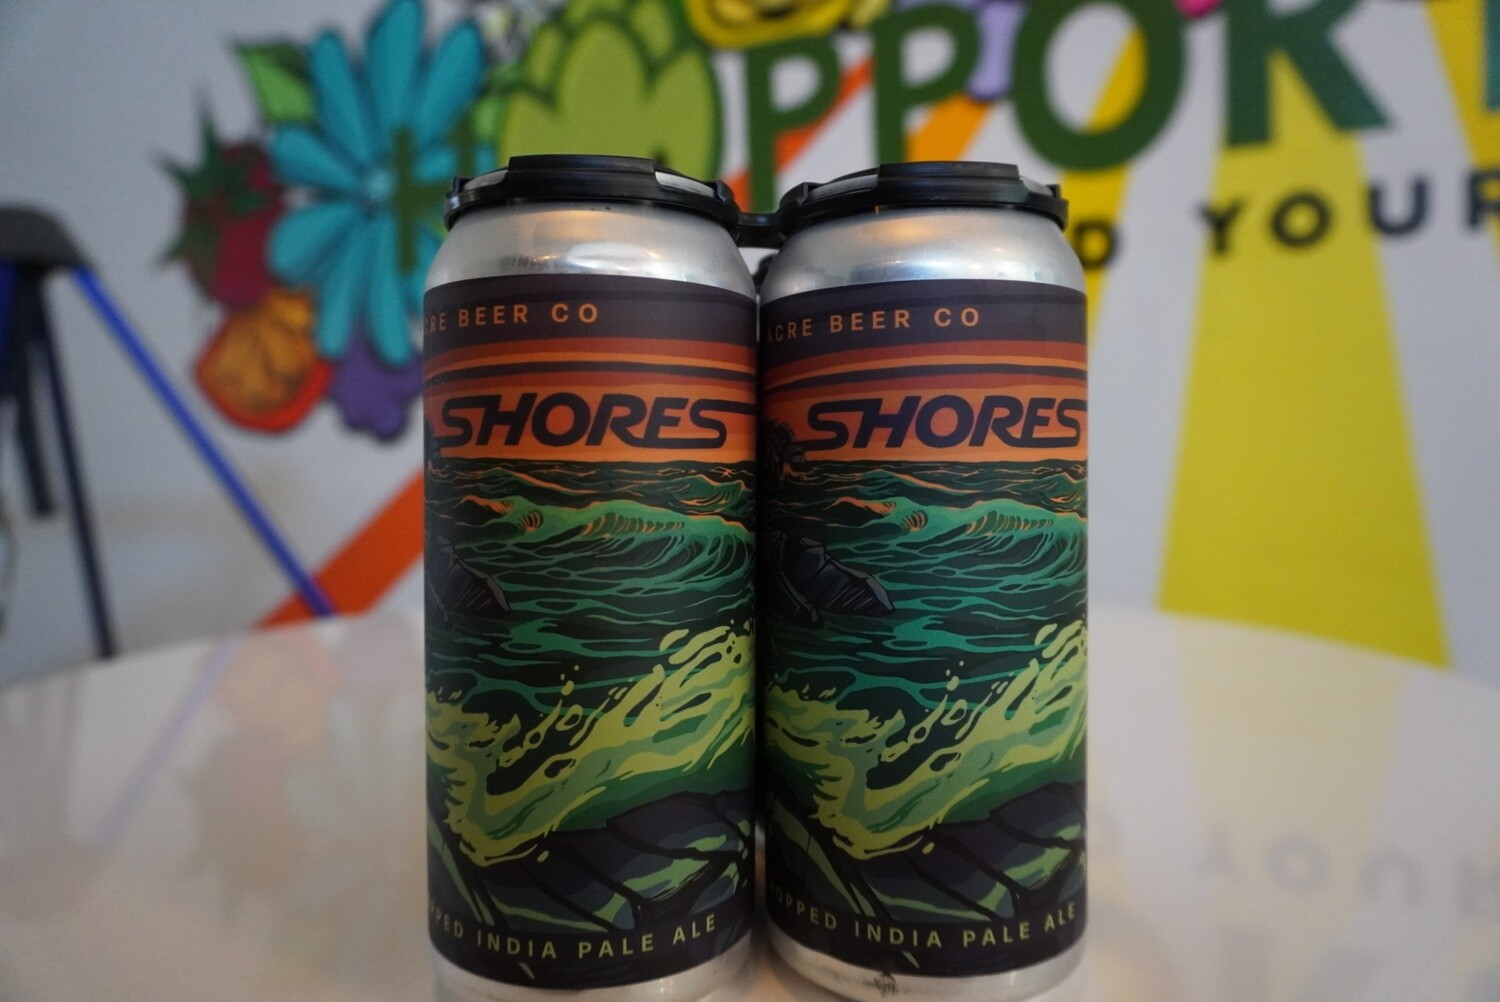 Half Acre - Shores - New England IPA - 6% ABV - 4 Pack